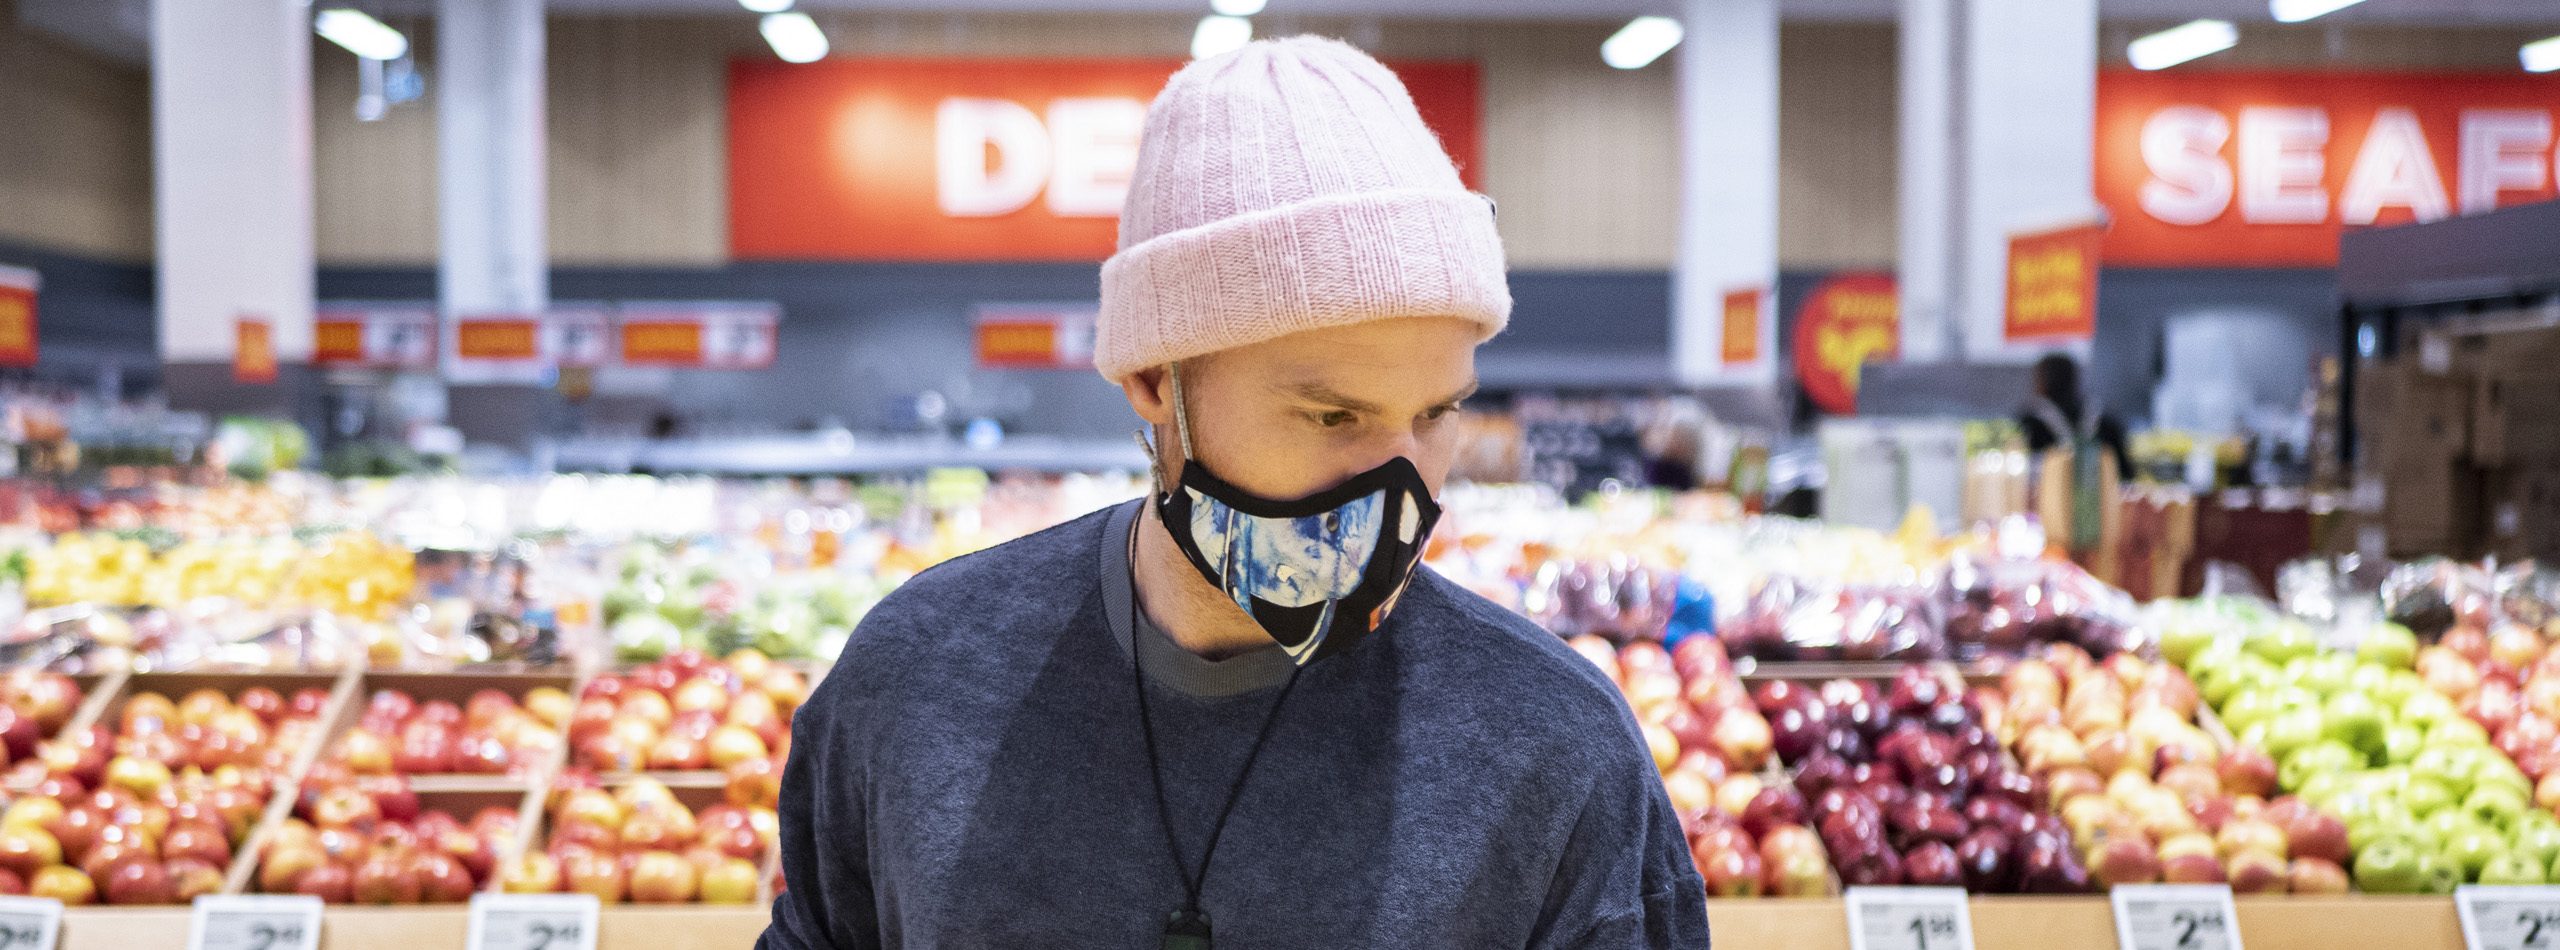 Man with face covering in grocery store